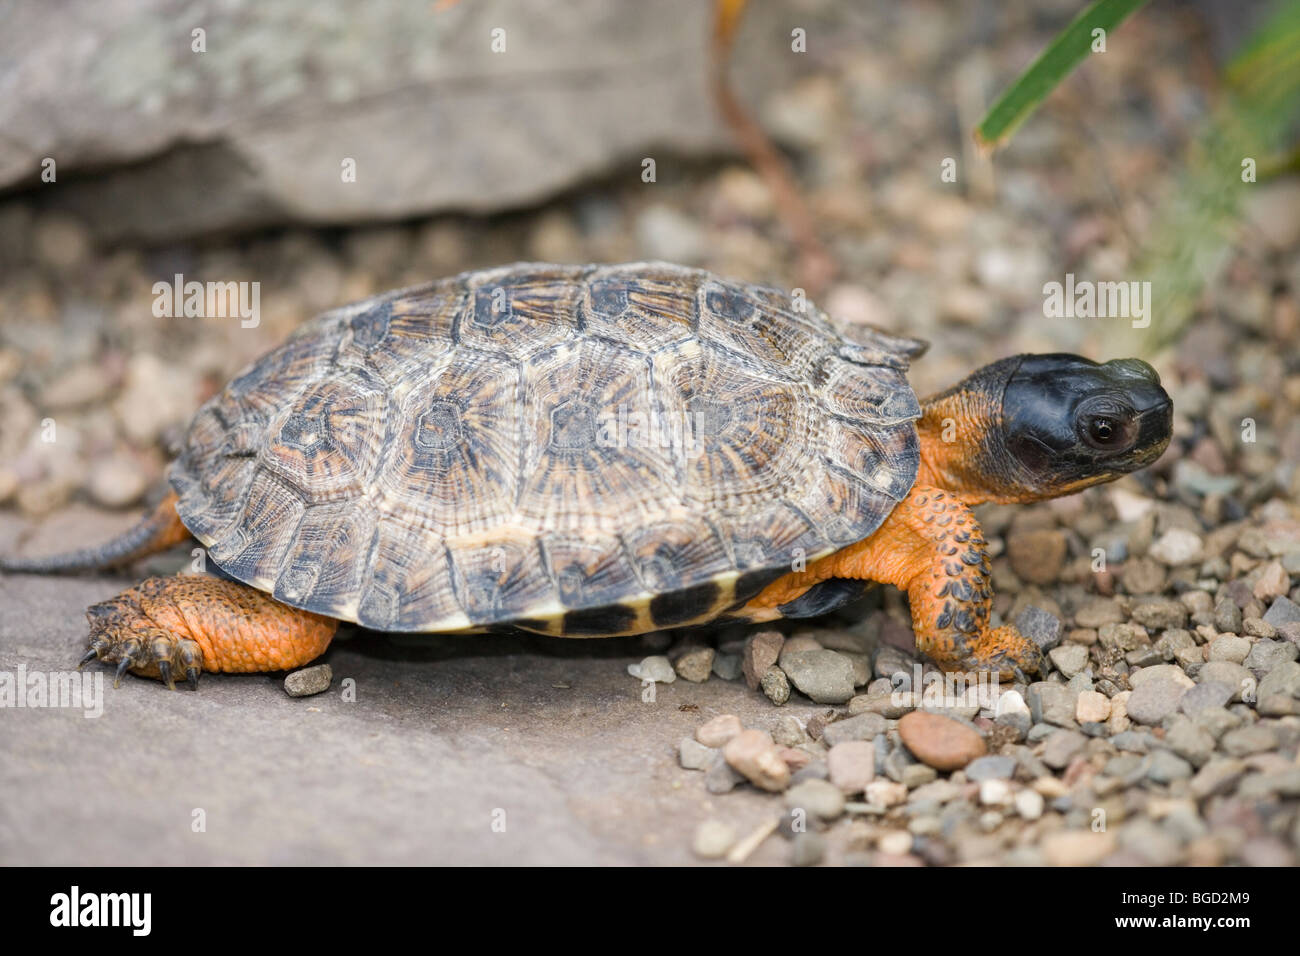 Wood Turtle (Glyptemys insculpta). North America. Reputation as a particularly intelligent reptile. - Stock Image